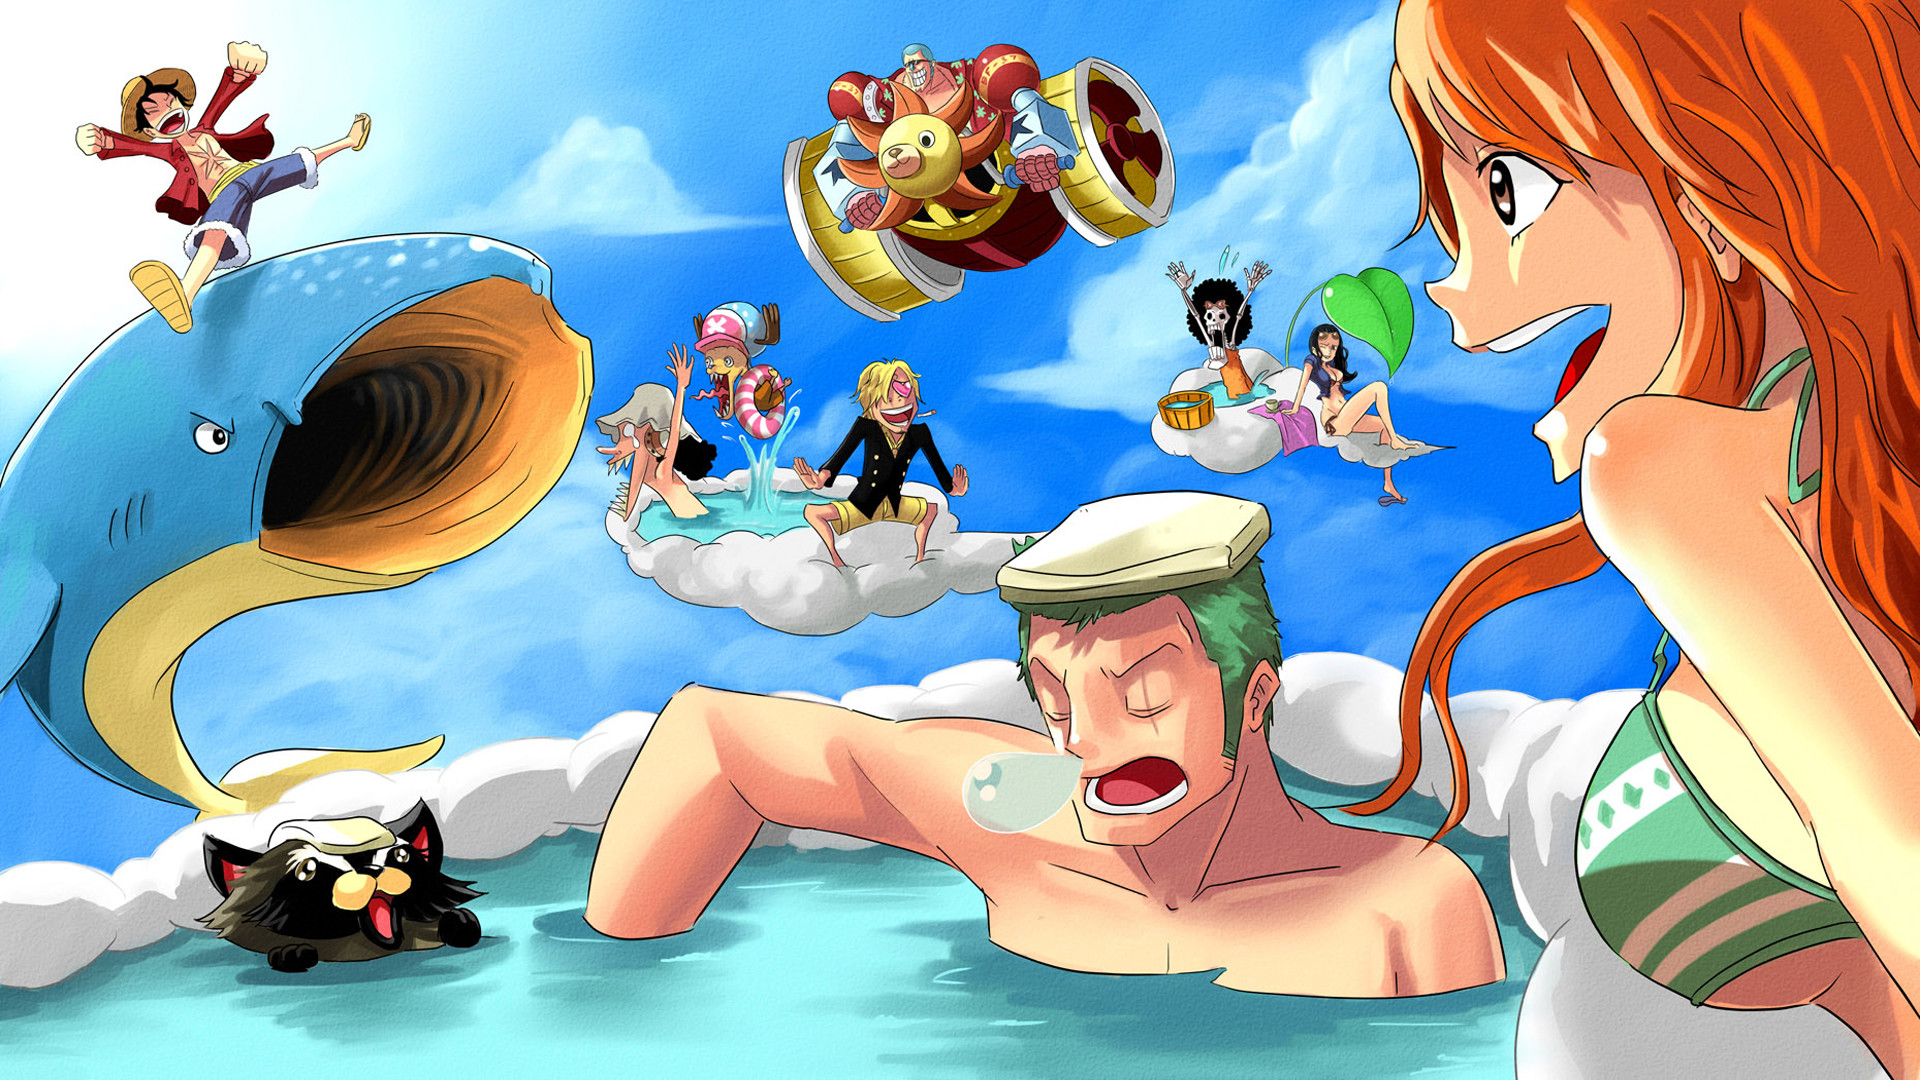 1920x1080 one piece anime hd wallpaper